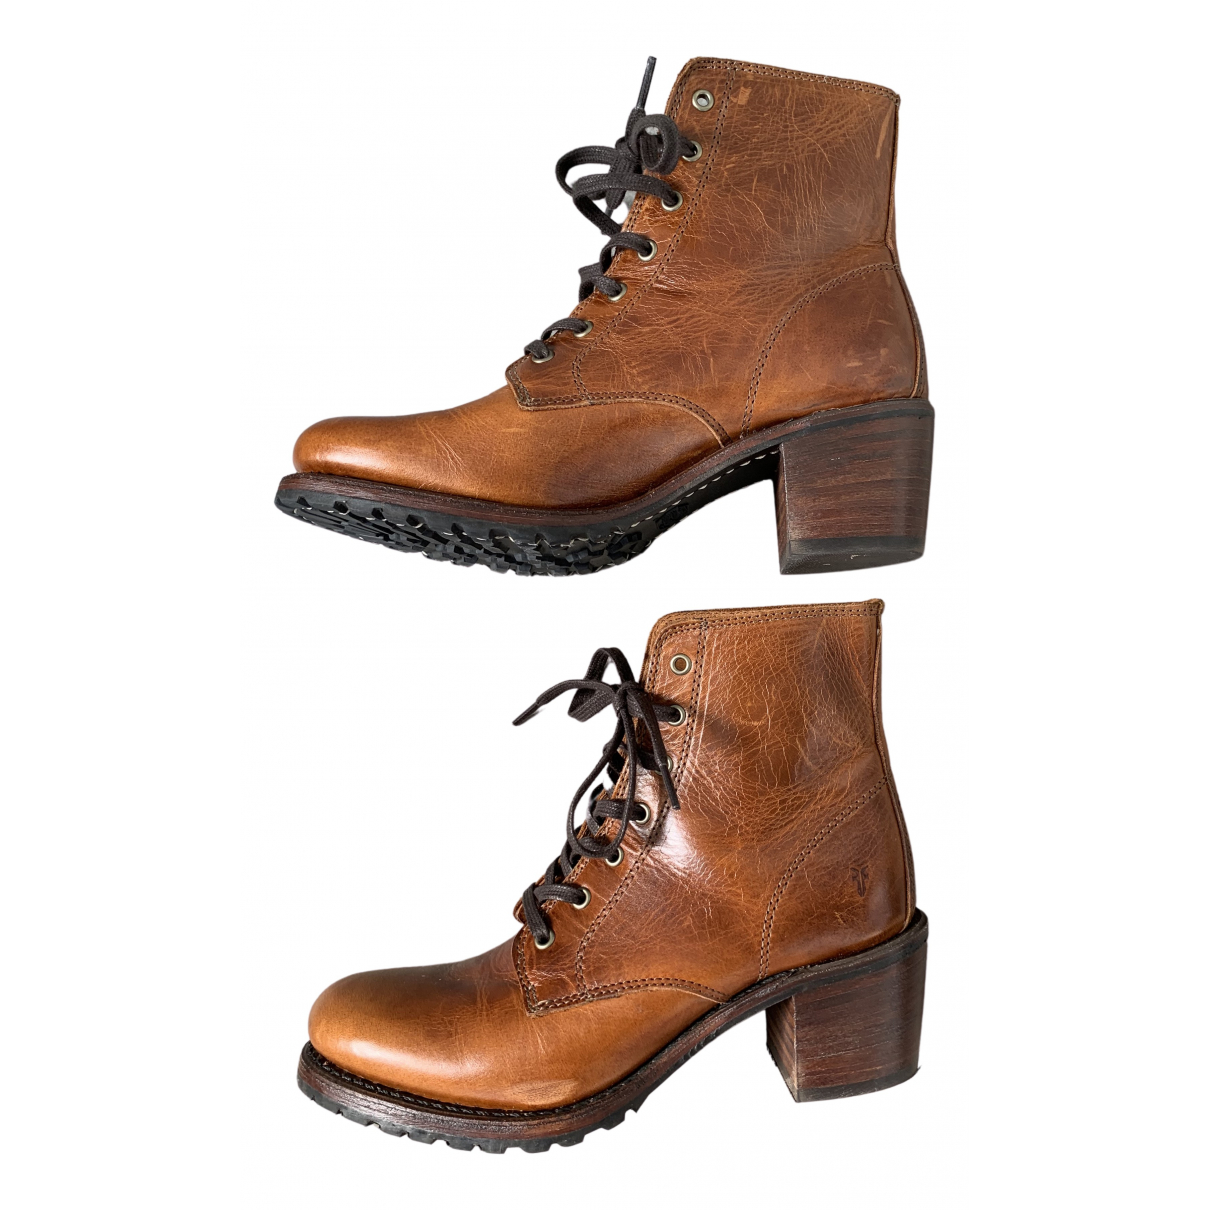 Frye N Brown Leather Boots for Women 9 US